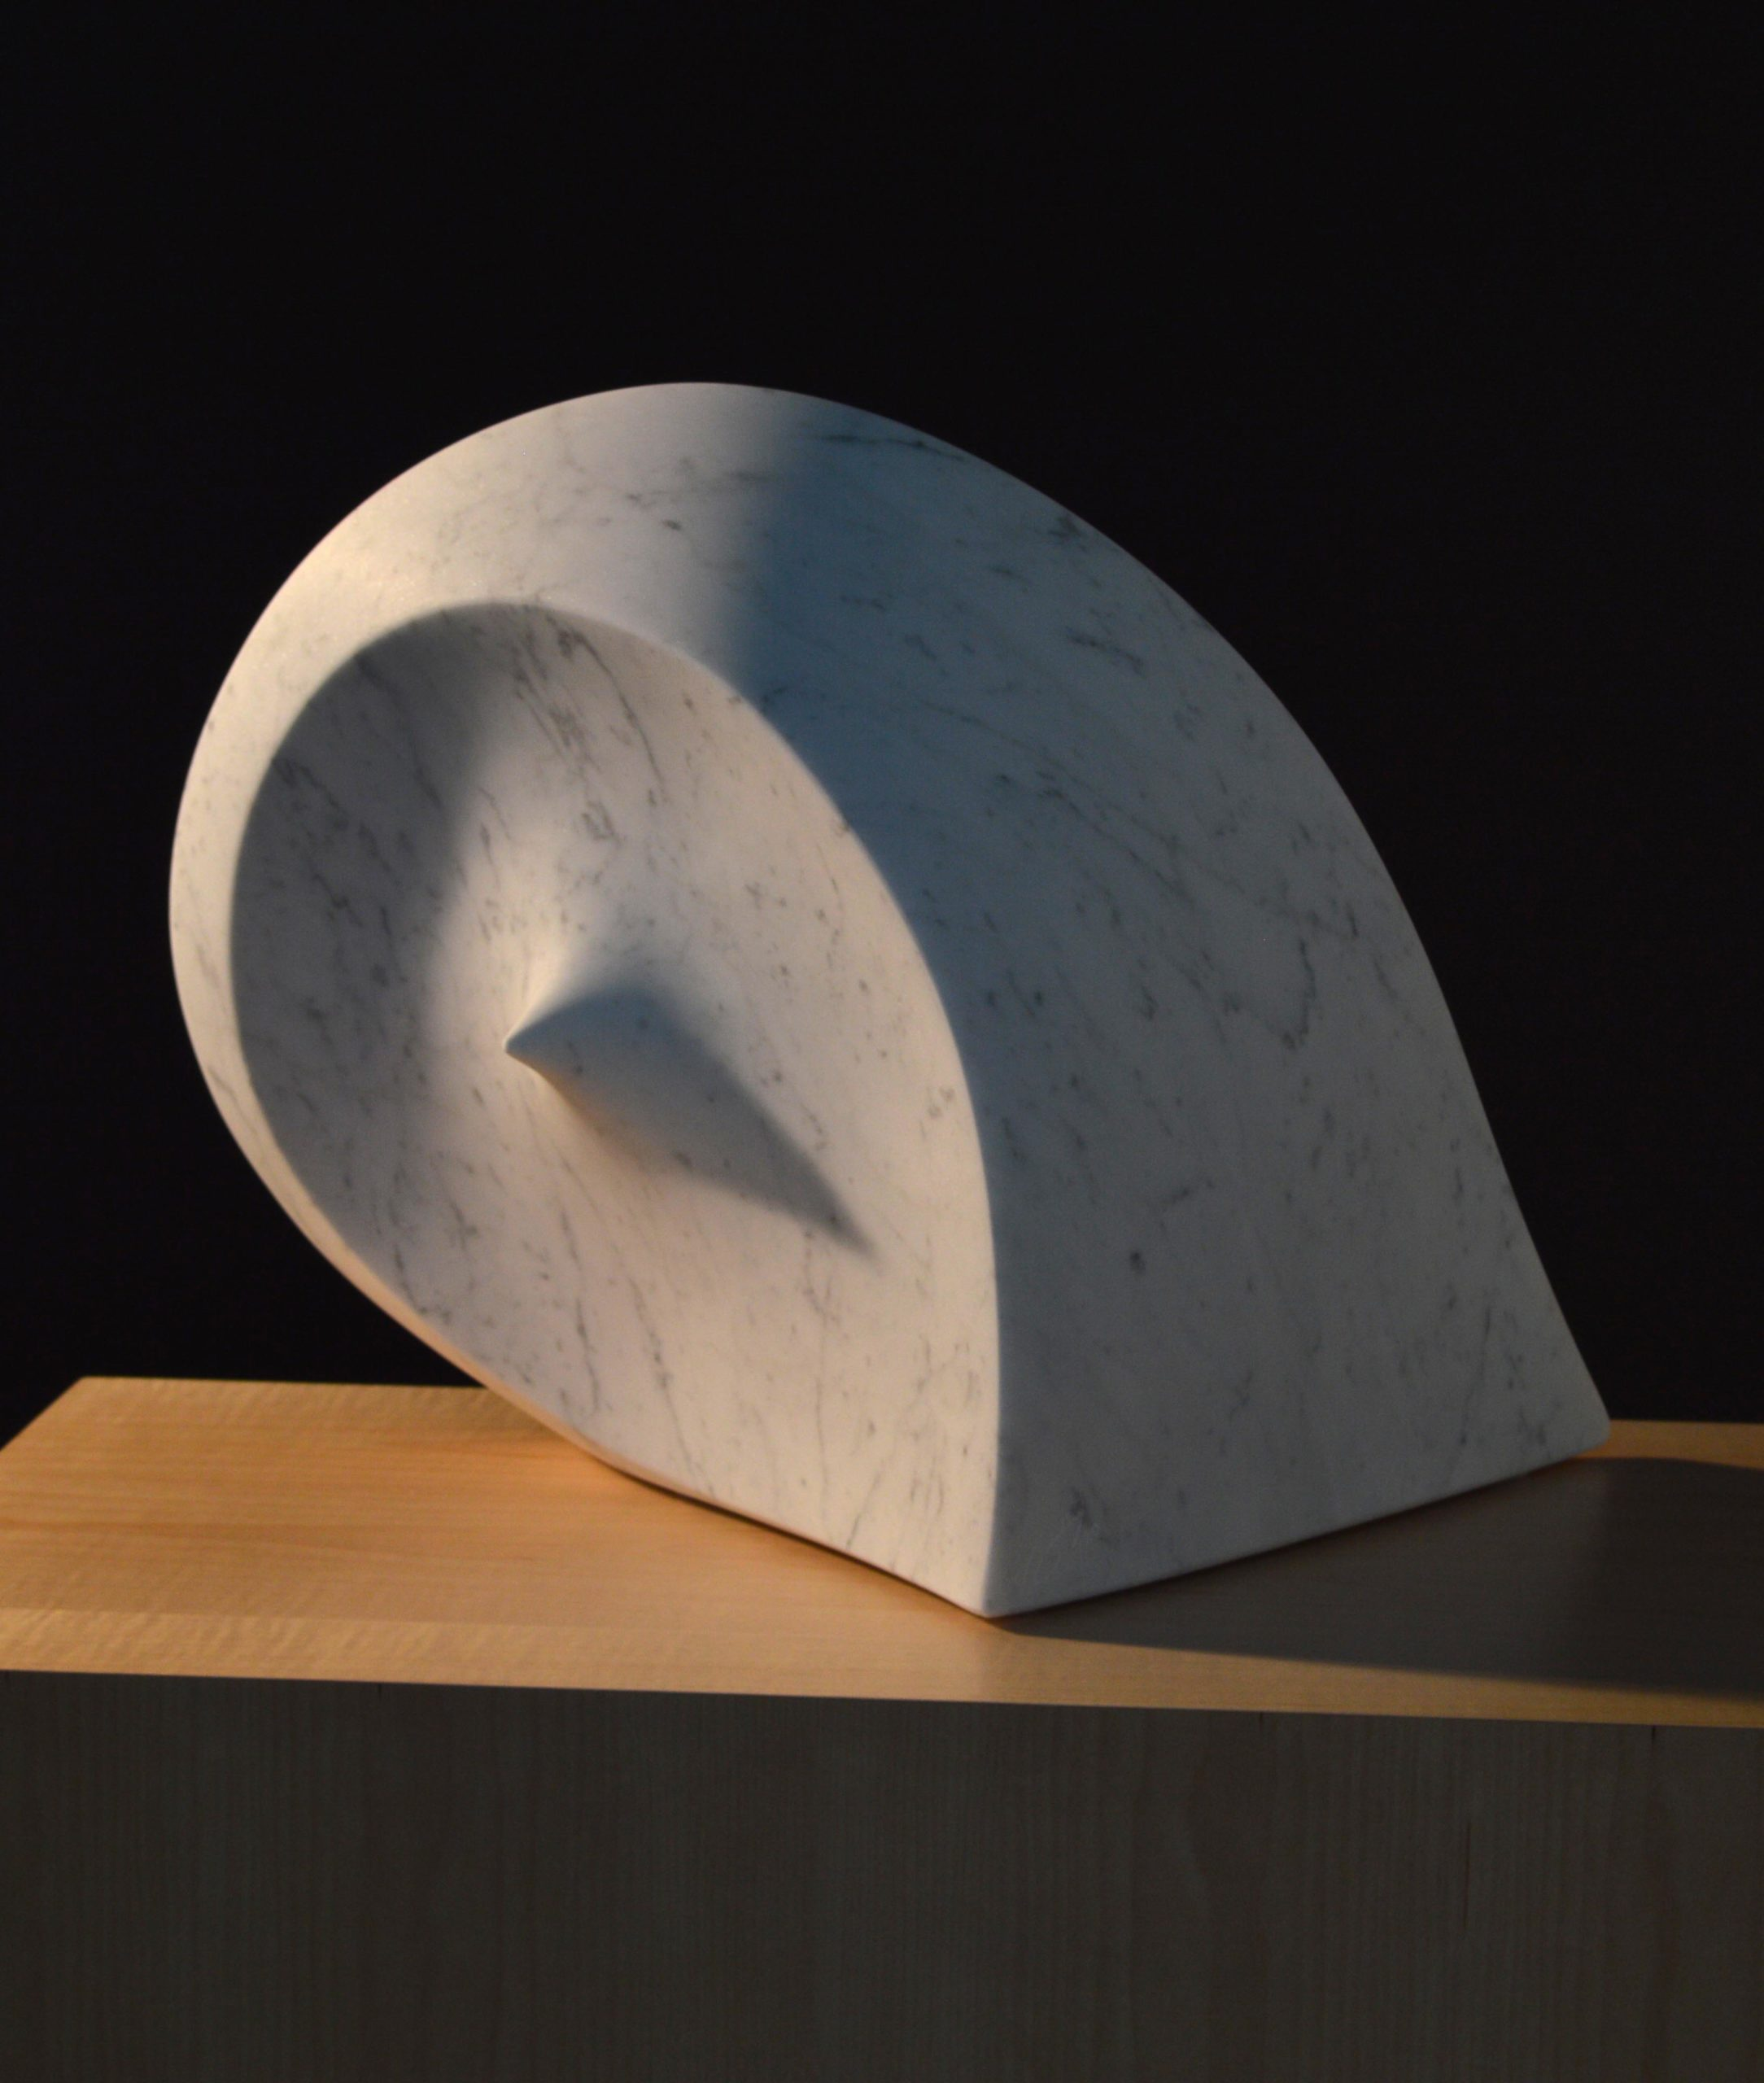 michael binkley sculptor stone sculpture abstract marble wave